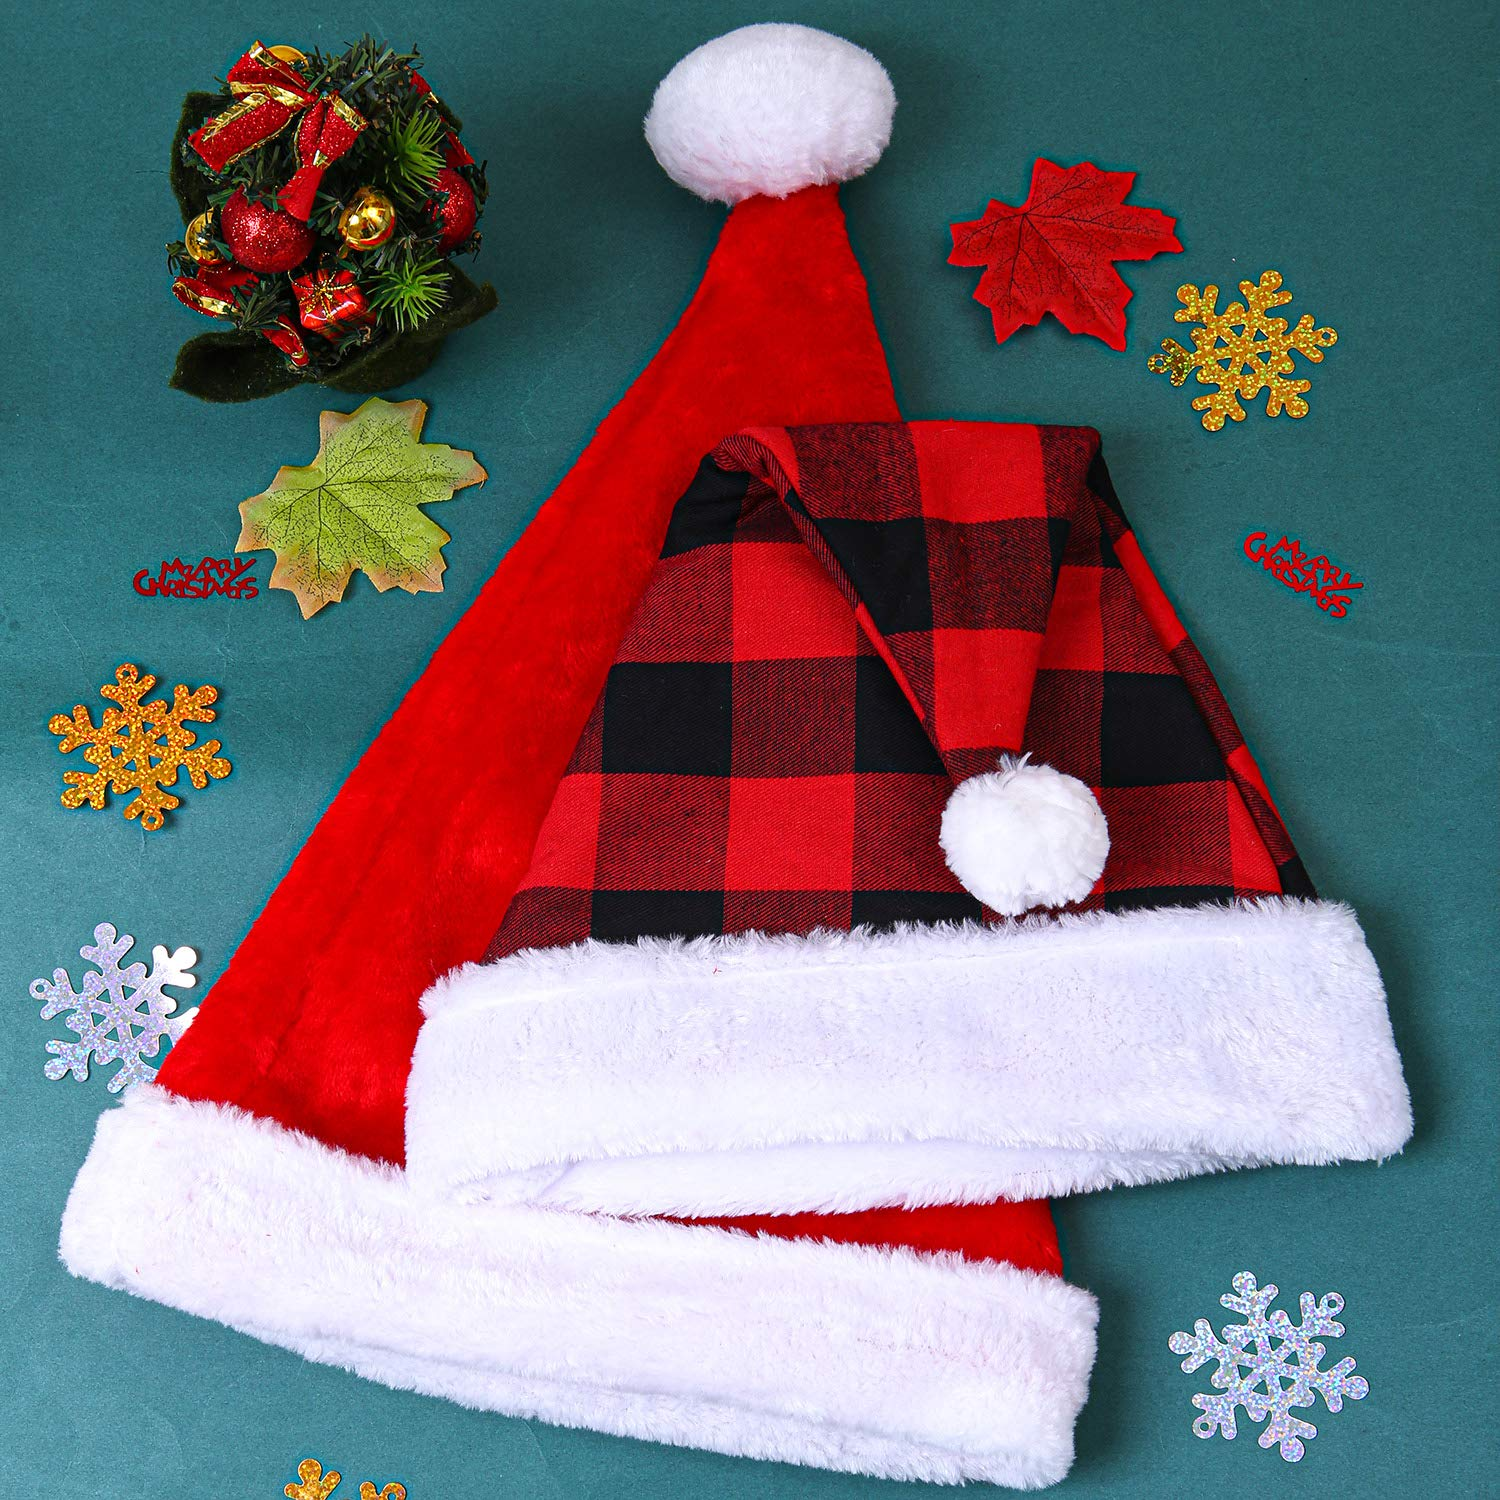 URATOT 2 Pack Santa Hat Christmas Santa Hat Plaid Santa Hat and Traditional Red and White Santa Hat for Christmas Costume Party